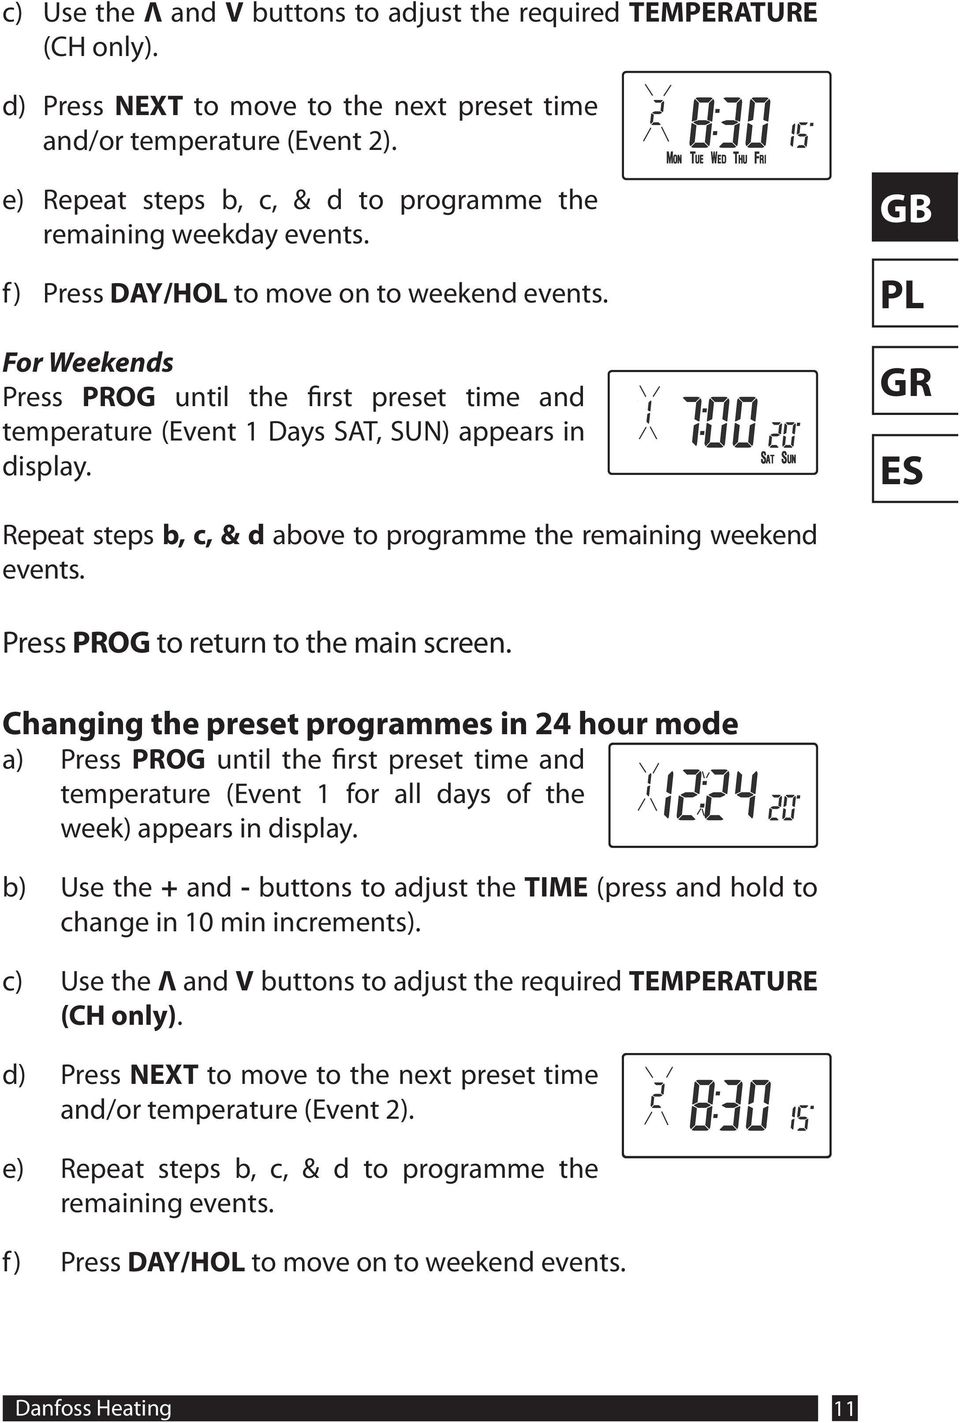 For Weekends Press PROG until the first preset time and temperature (Event 1 Days SAT, SUN) appears in display. Repeat steps b, c, & d above to programme the remaining weekend events.